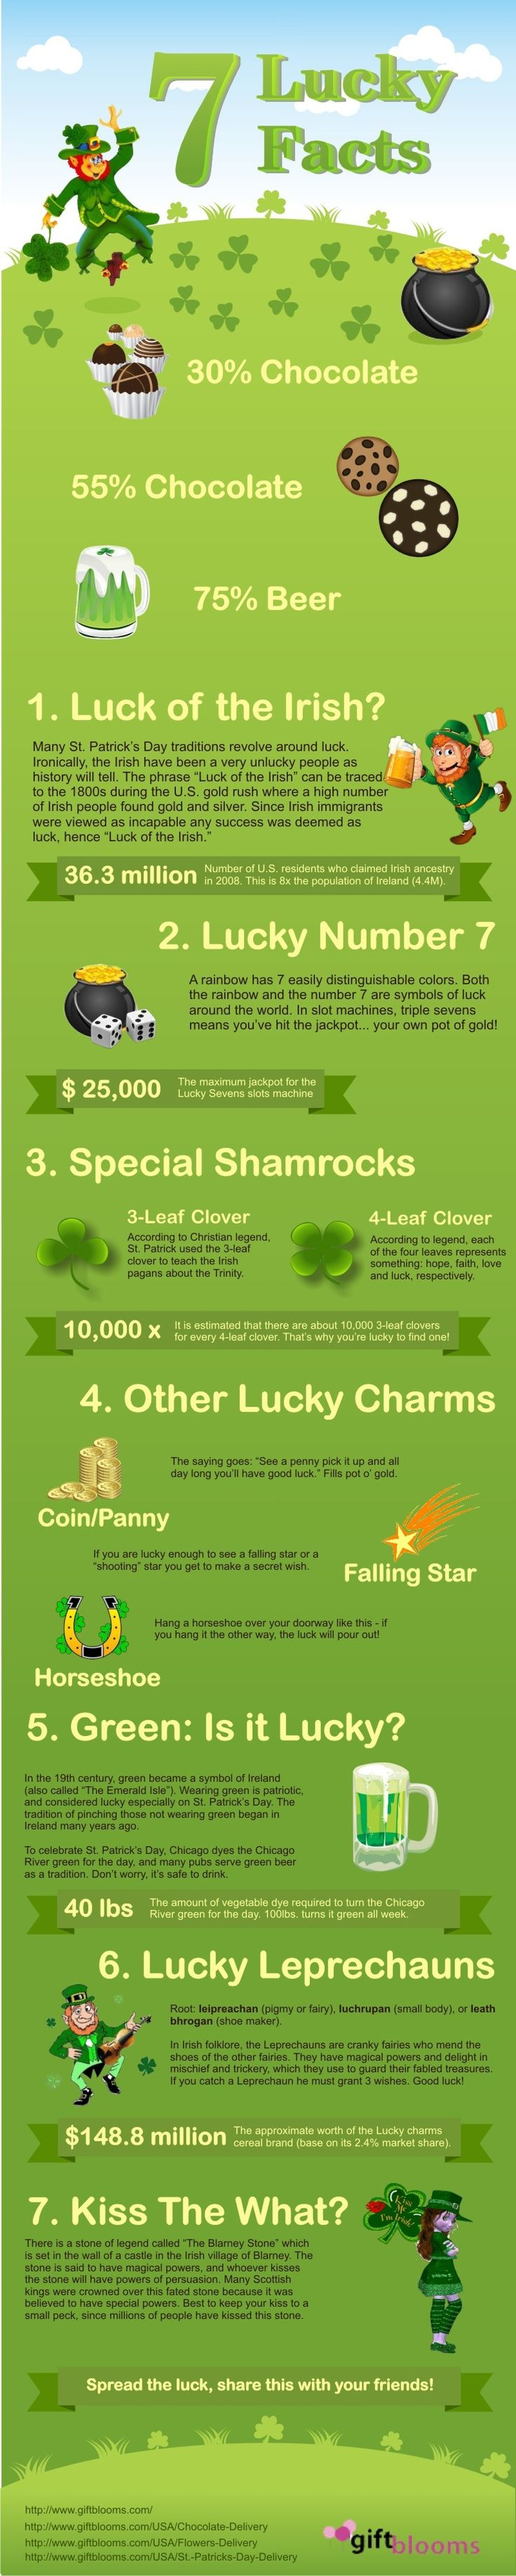 1000 Images About St Patricks Day Gift On Pinterest